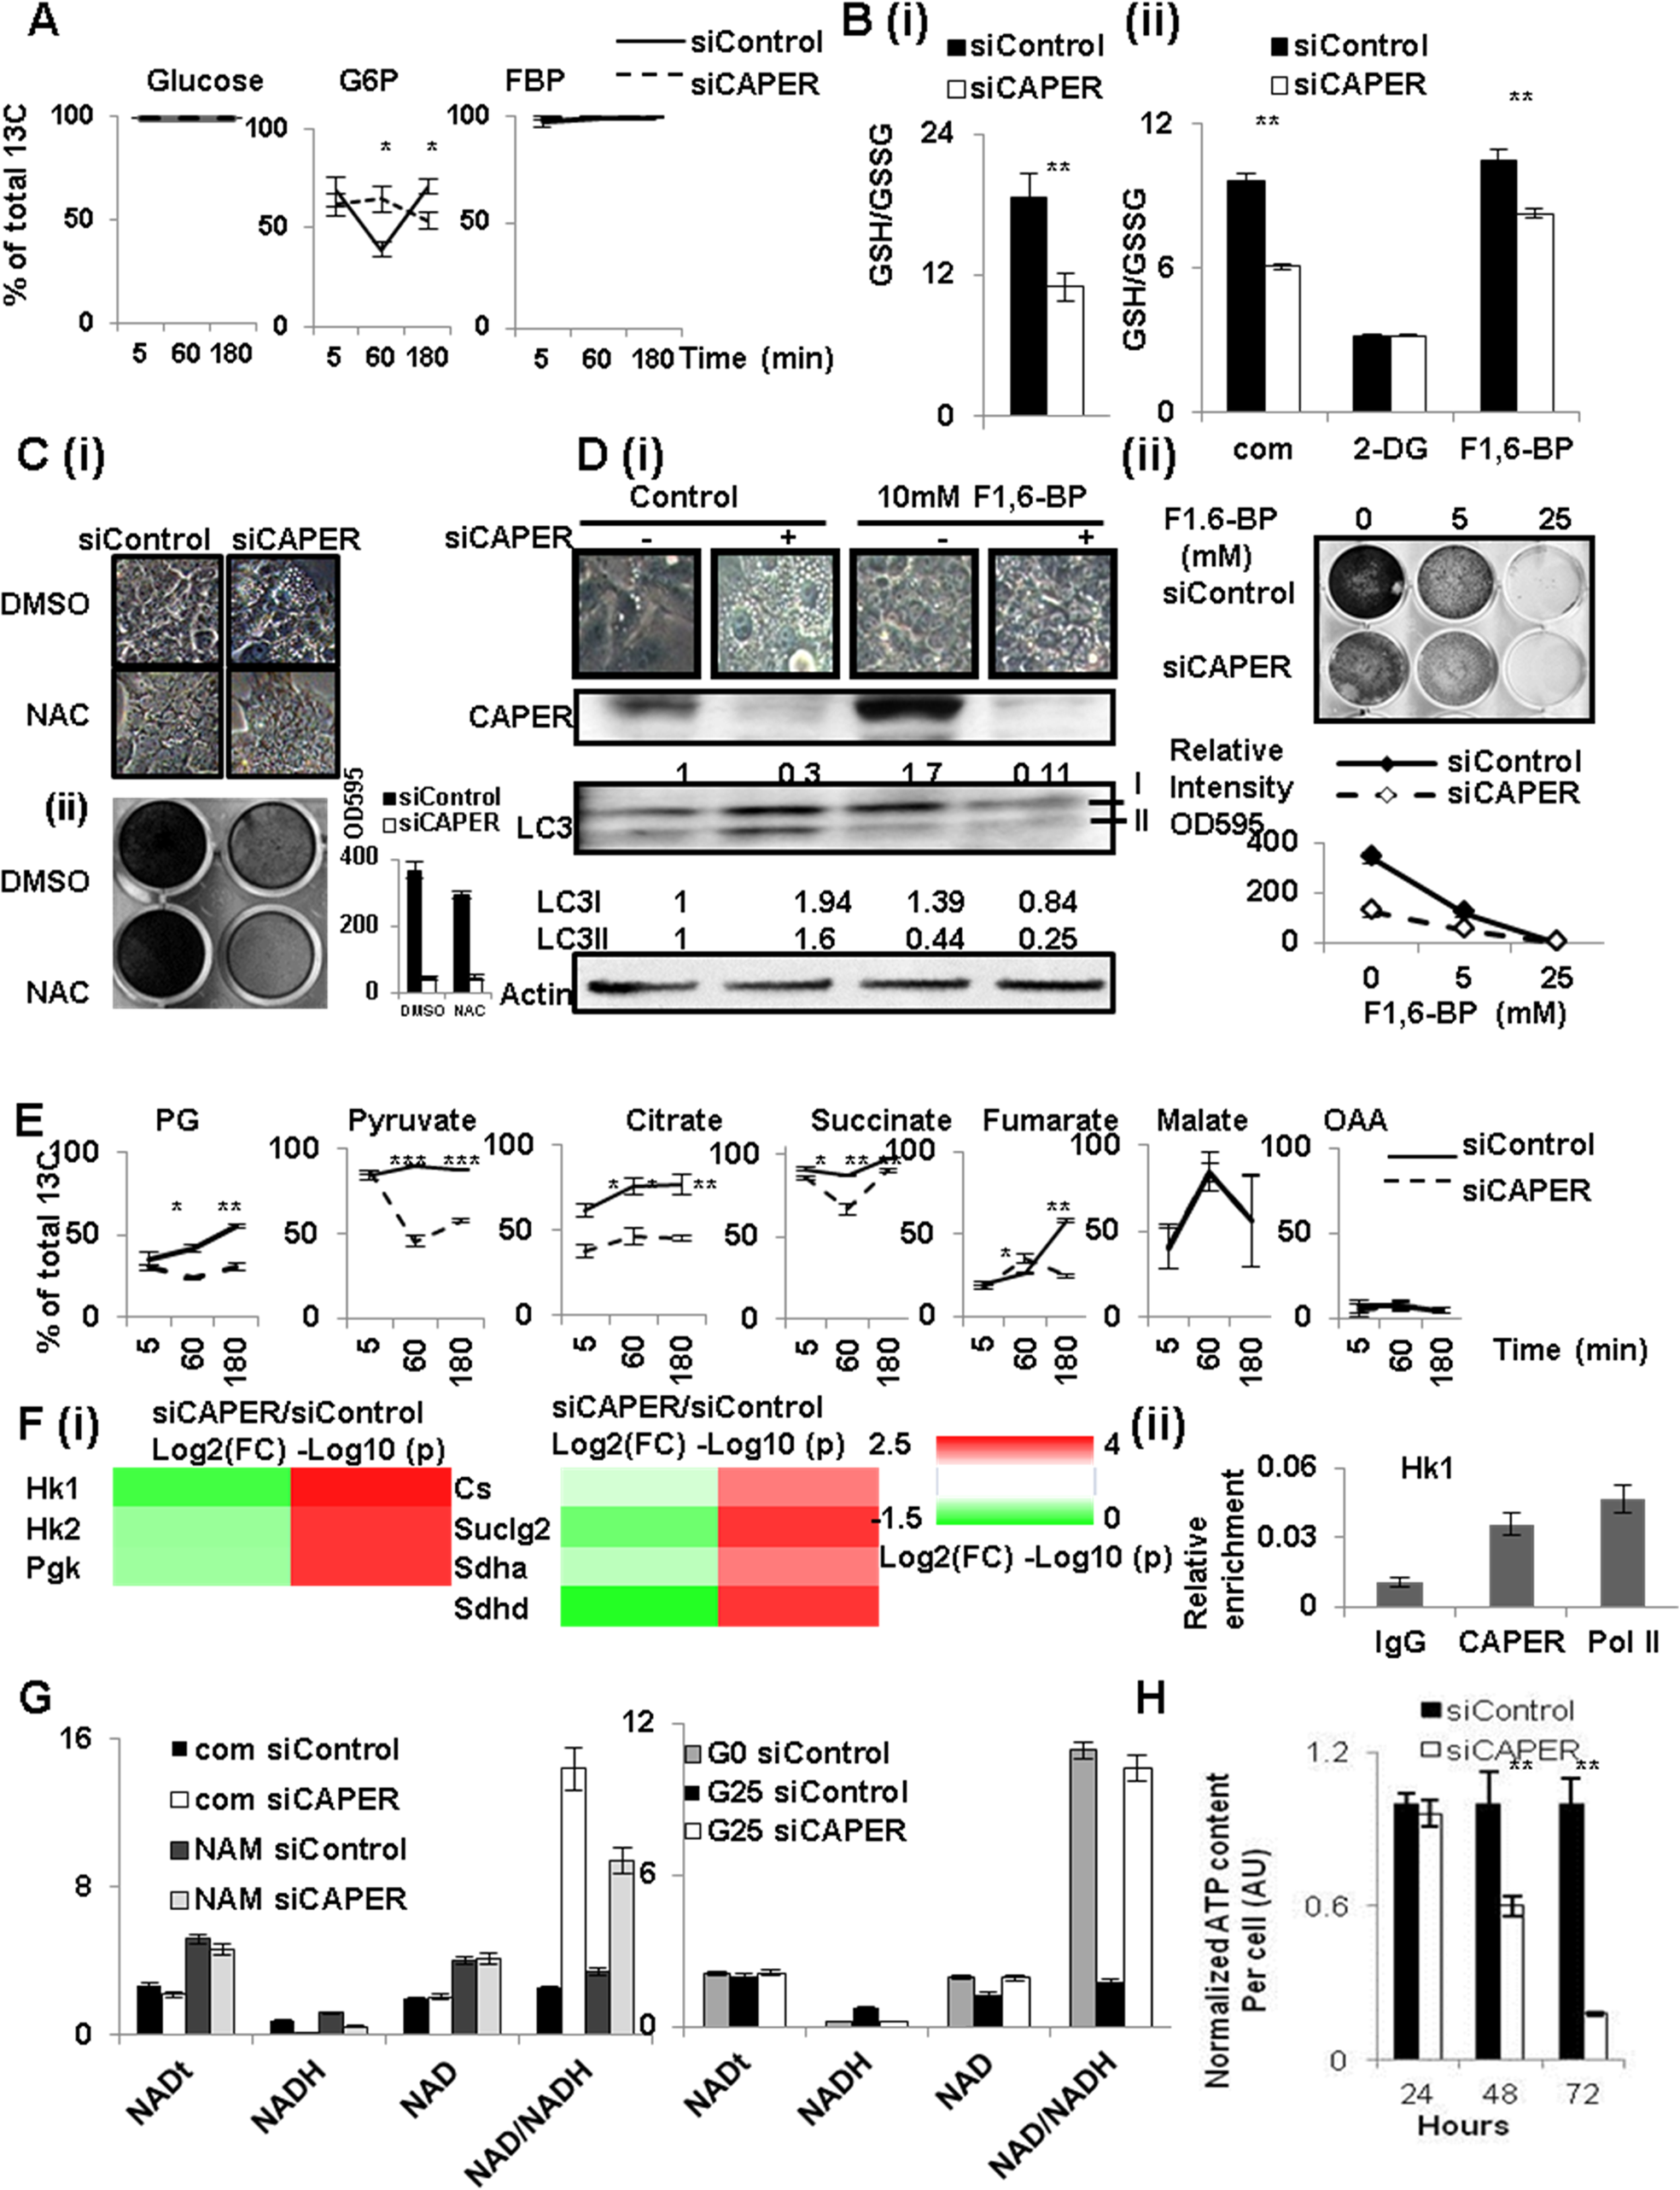 CAPER deficiency decreased carbon flux into glycolysis and TCA cycles leading to defective compensatory mitochondrial respiratory responses.